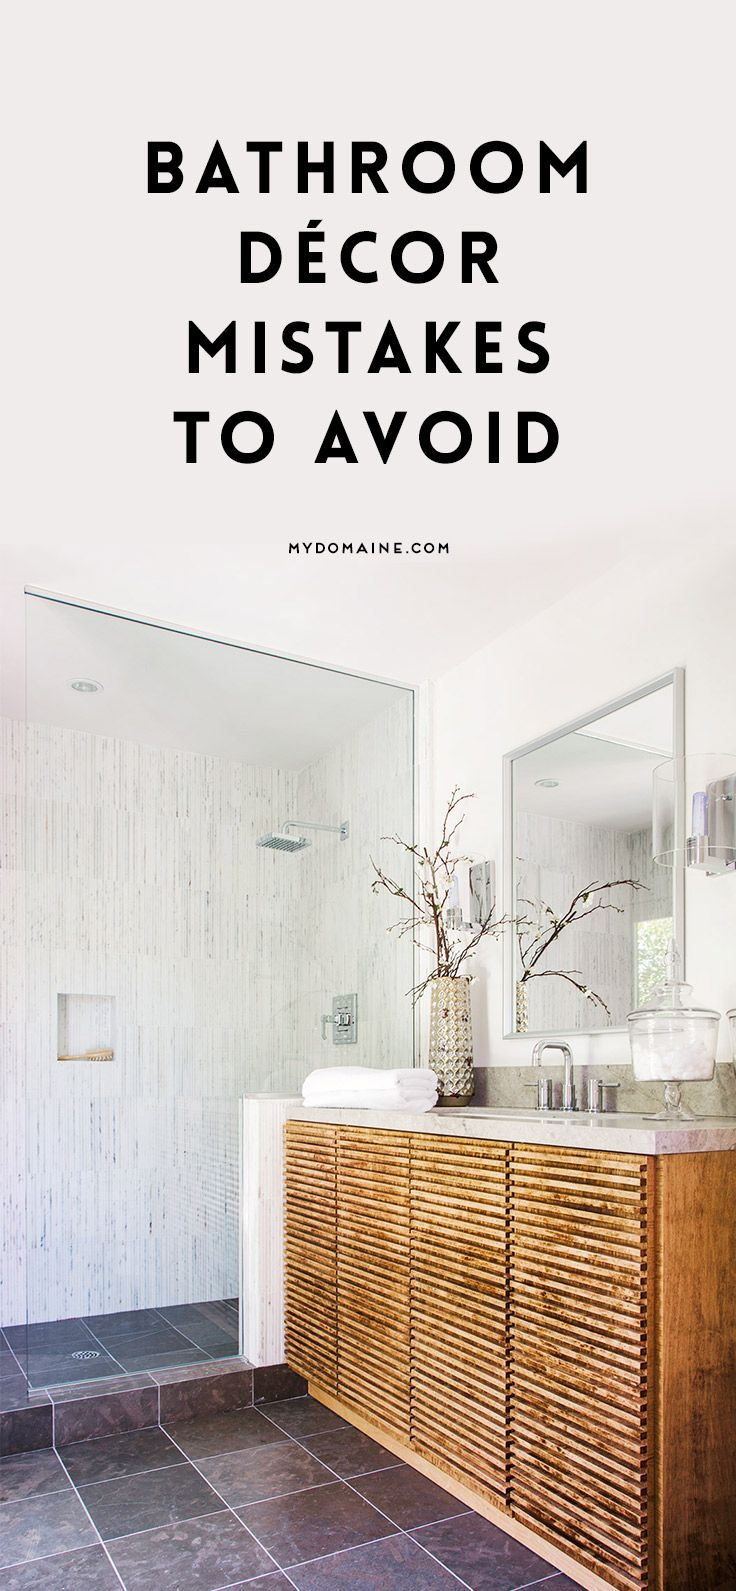 5 d cor mistakes to avoid in your bathroom beautiful for 5 bathroom mistakes